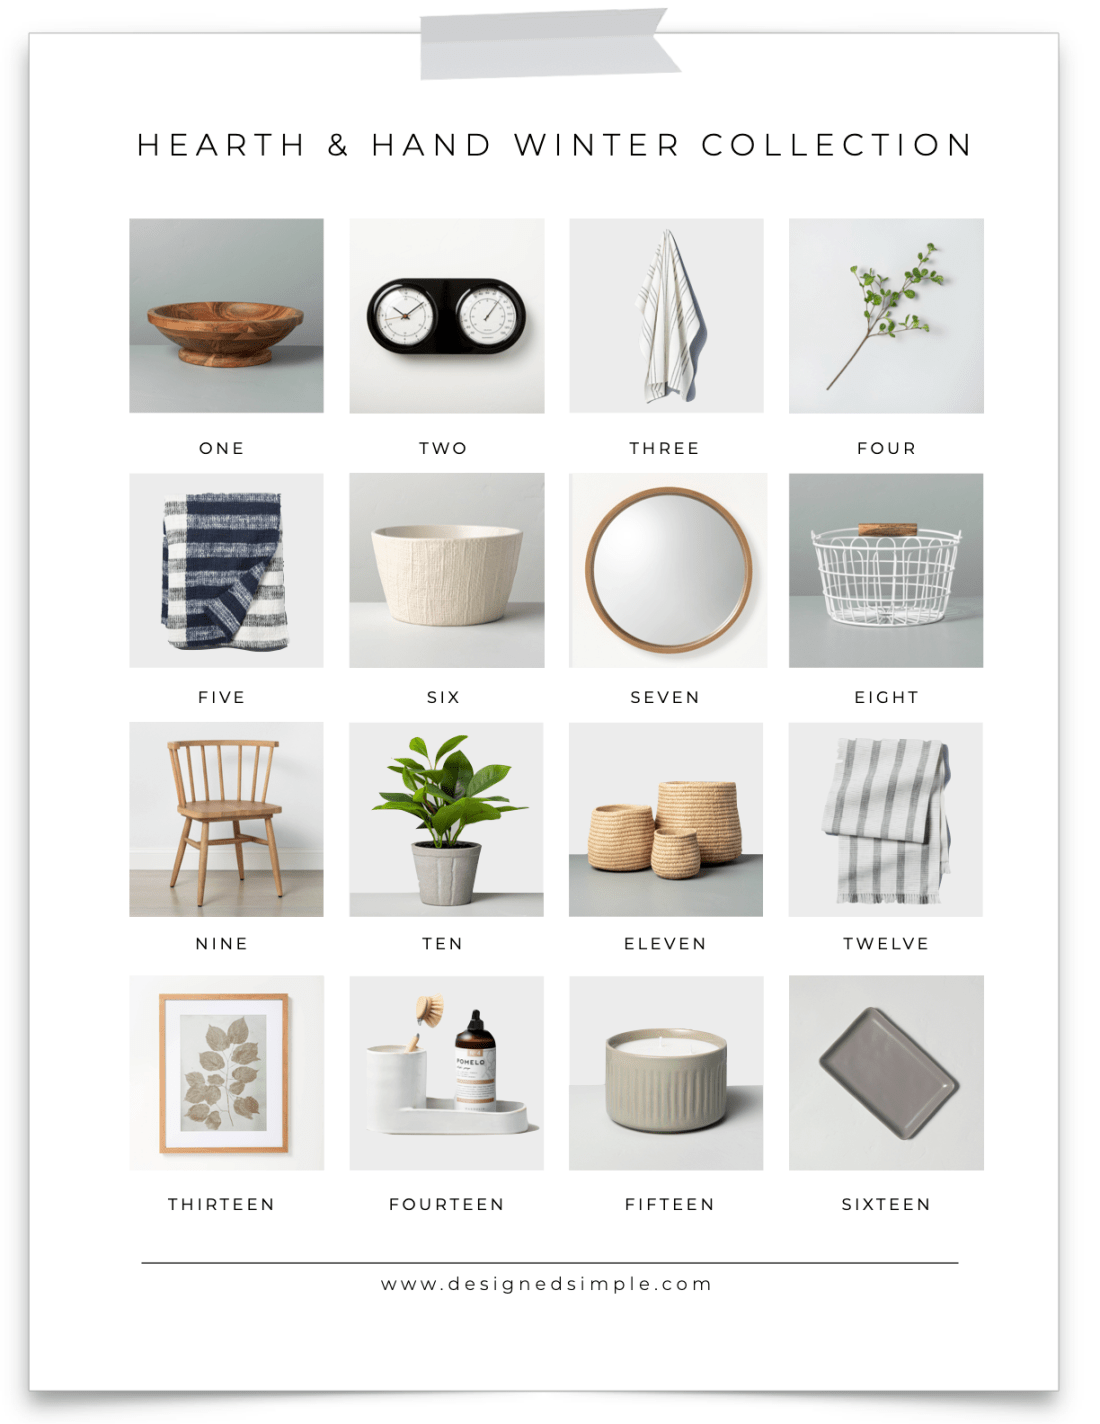 Sharing my favorites from the Hearth & Hand winter collection at Target. Fresh, simple, and clean - I'm ready to decorate in the new year! | Designed Simple | designedsimple.com